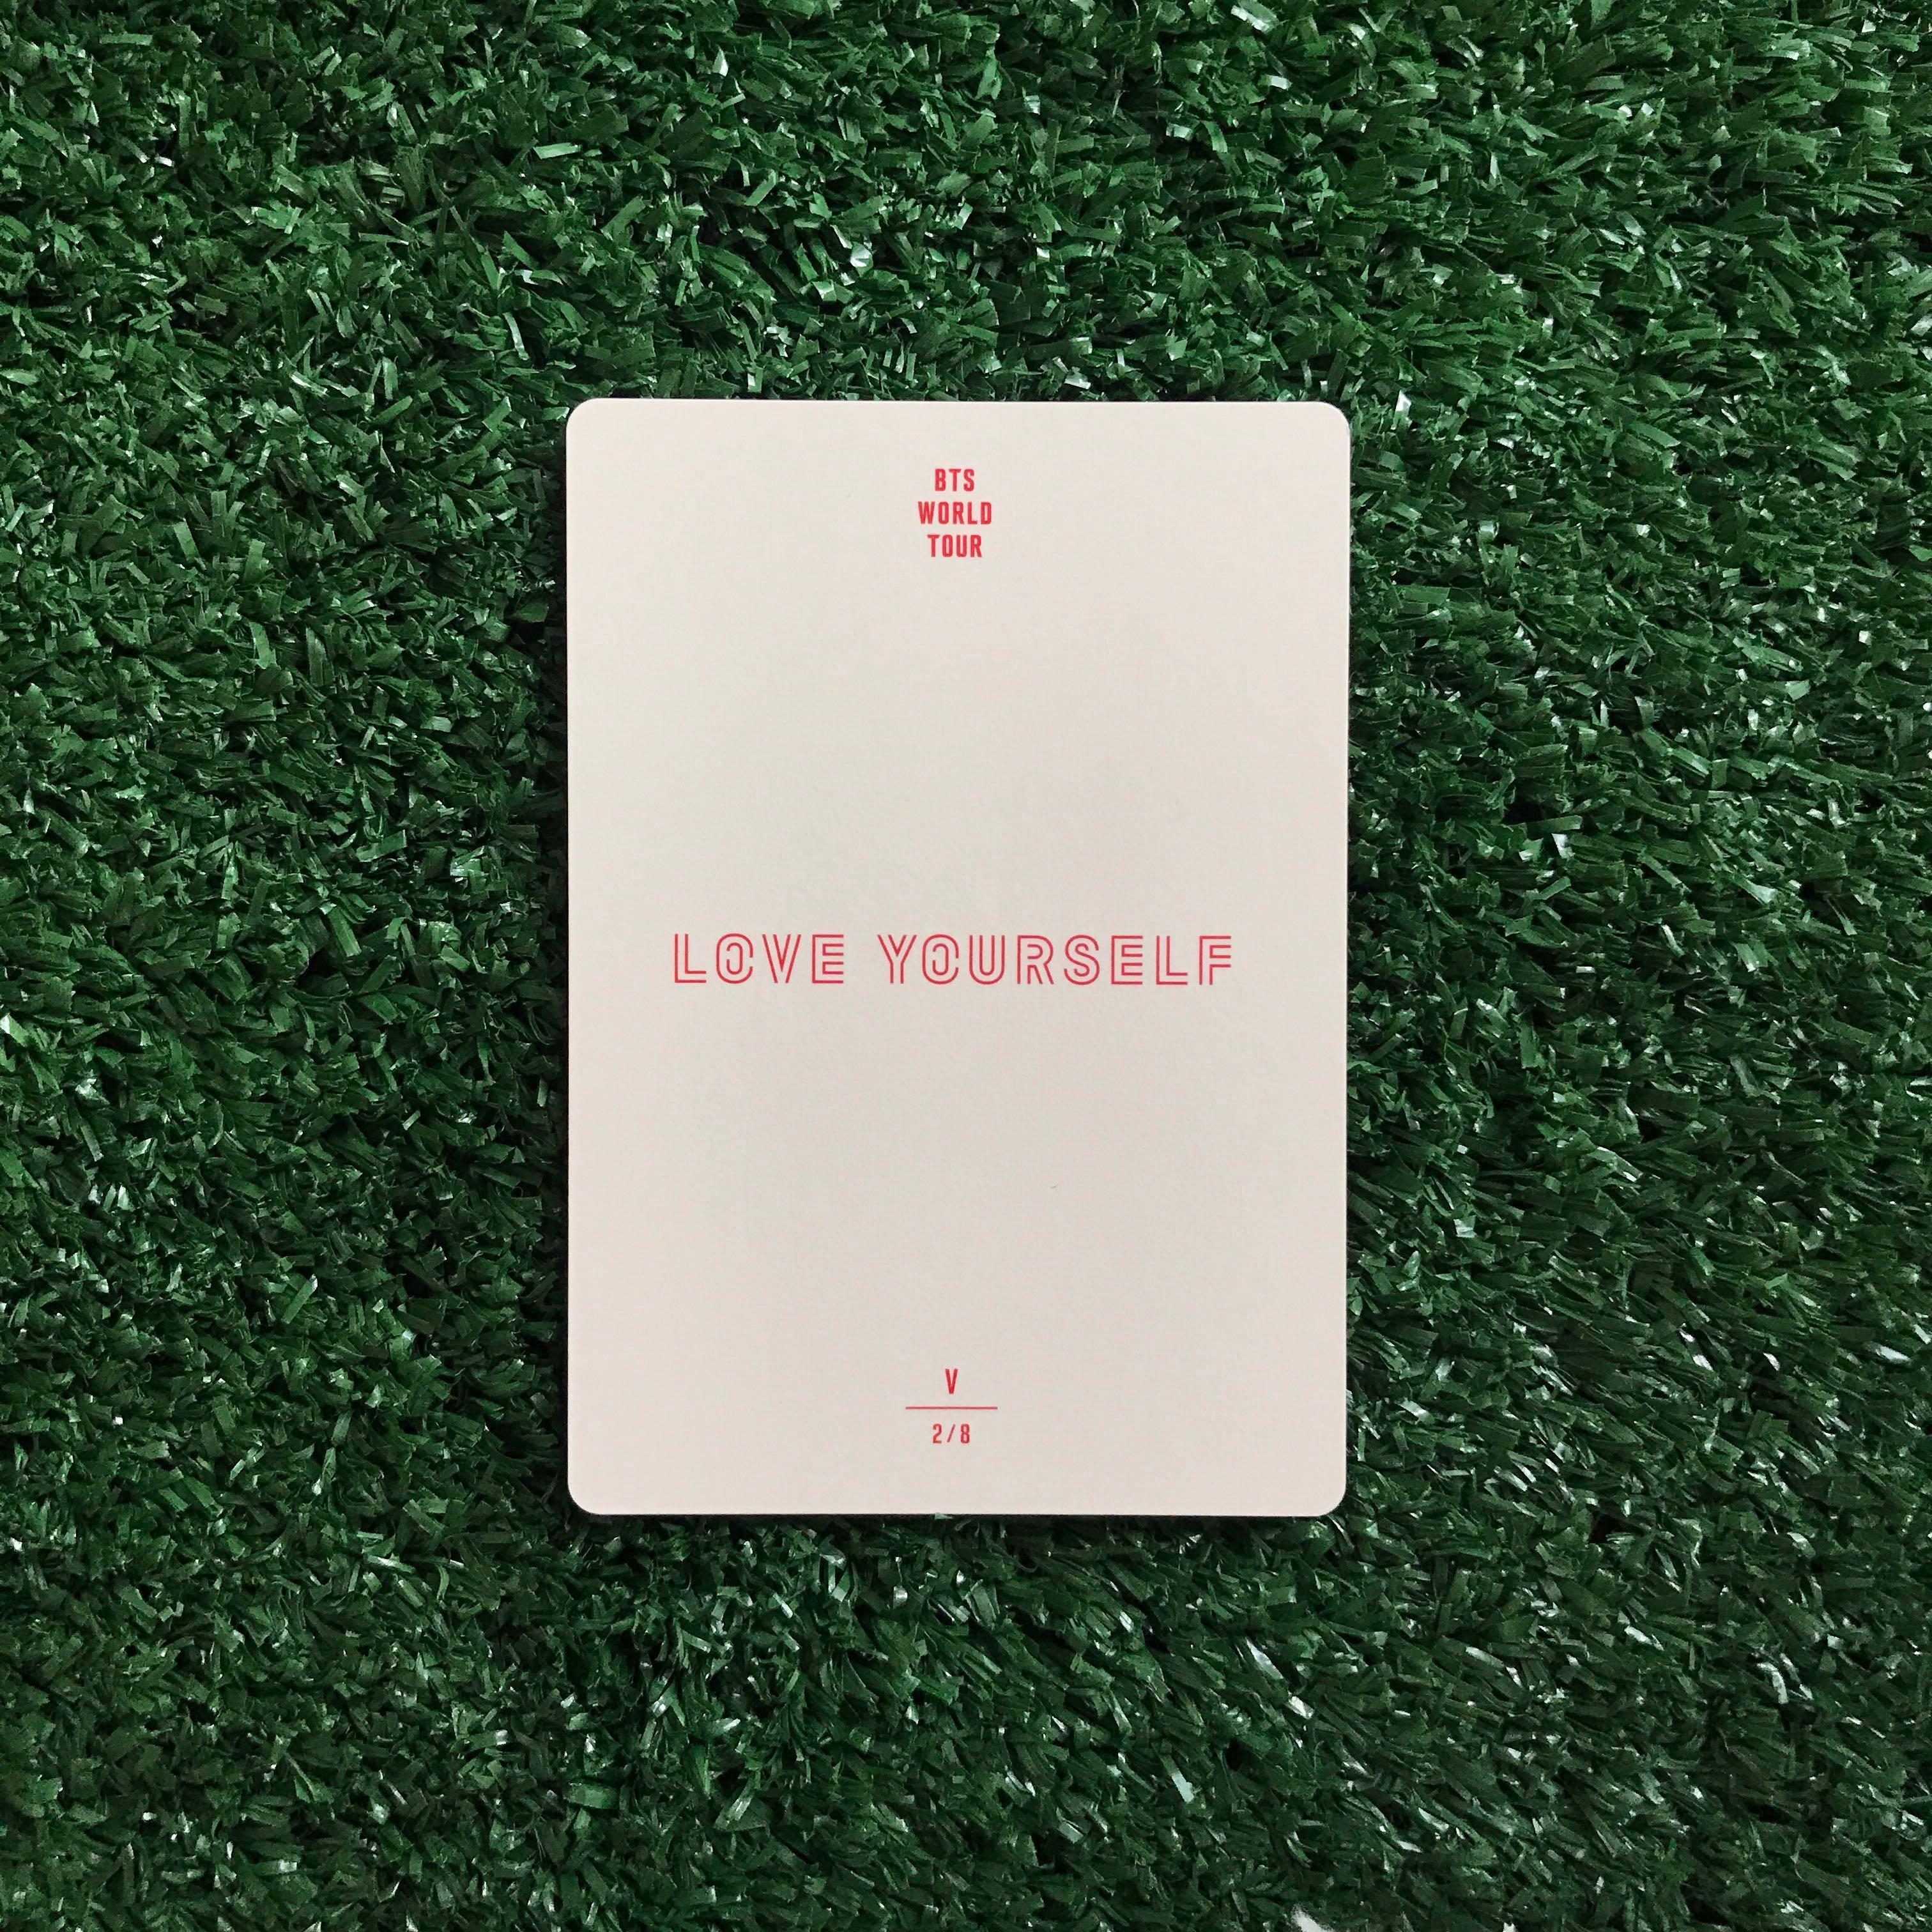 [WTS] V Photocard - BTS Love Yourself Tour Official M